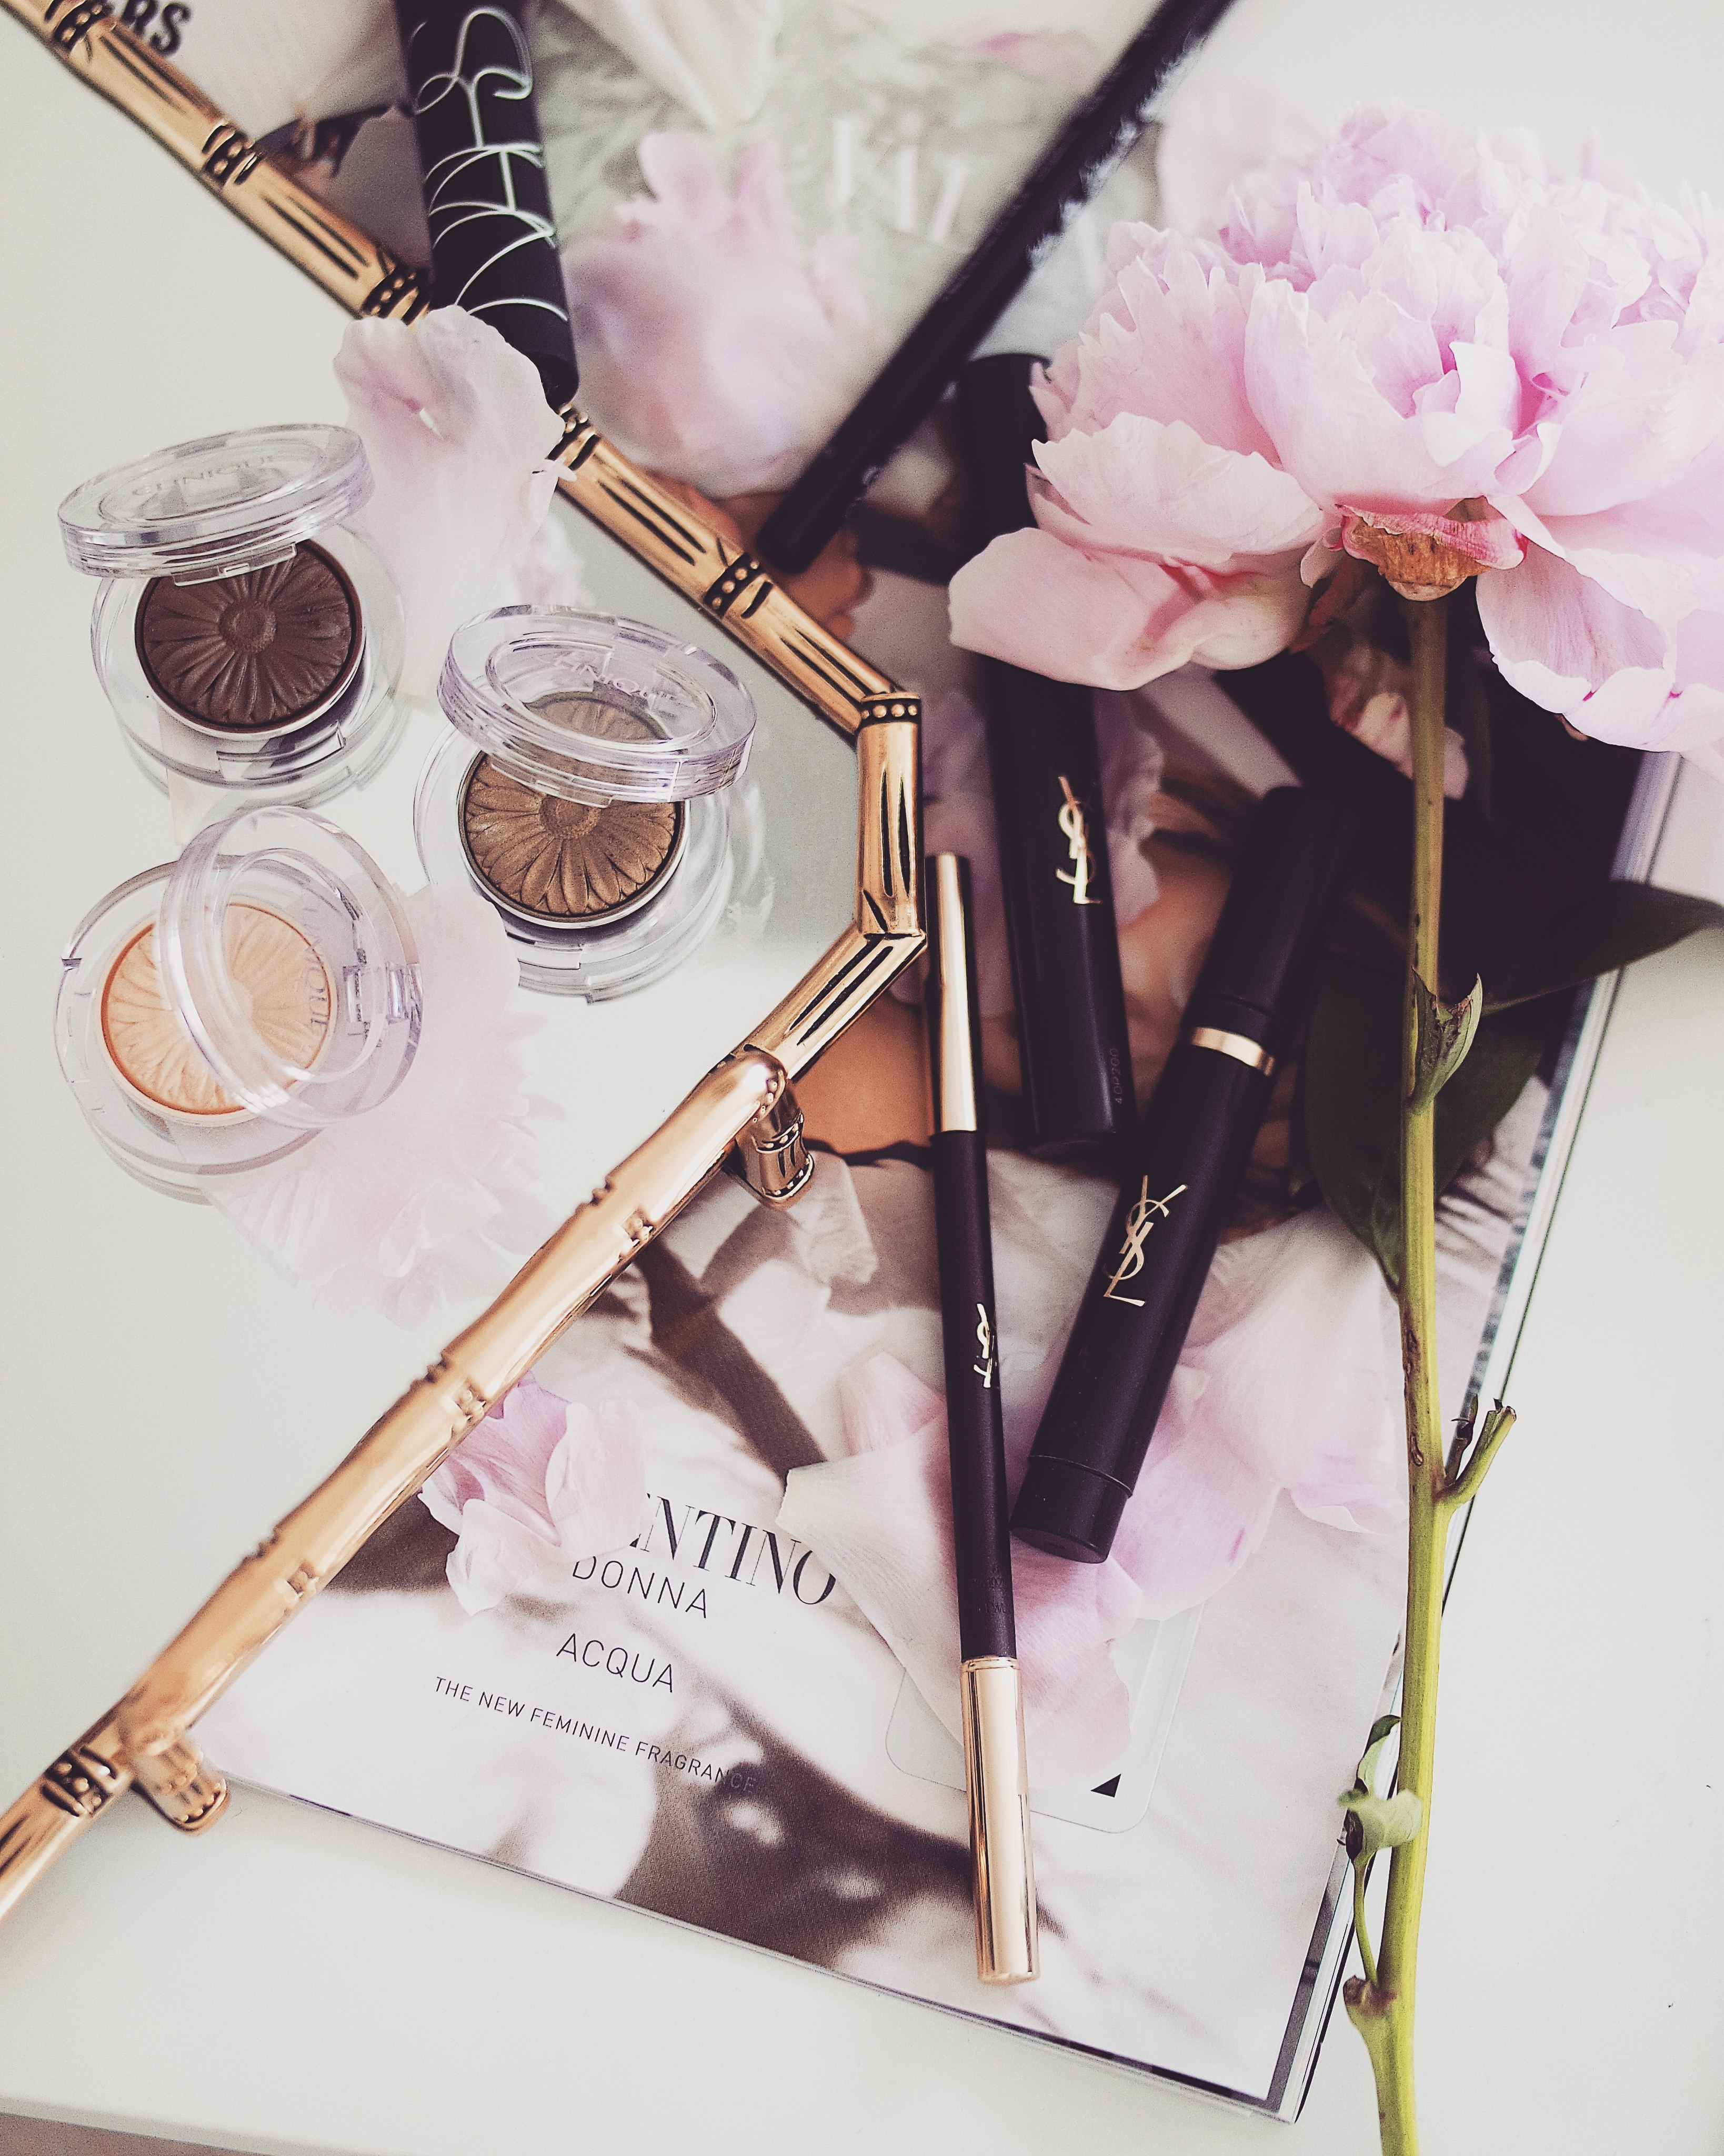 Travel Beauty Essentials - Flatlay of Eye Make Up Products